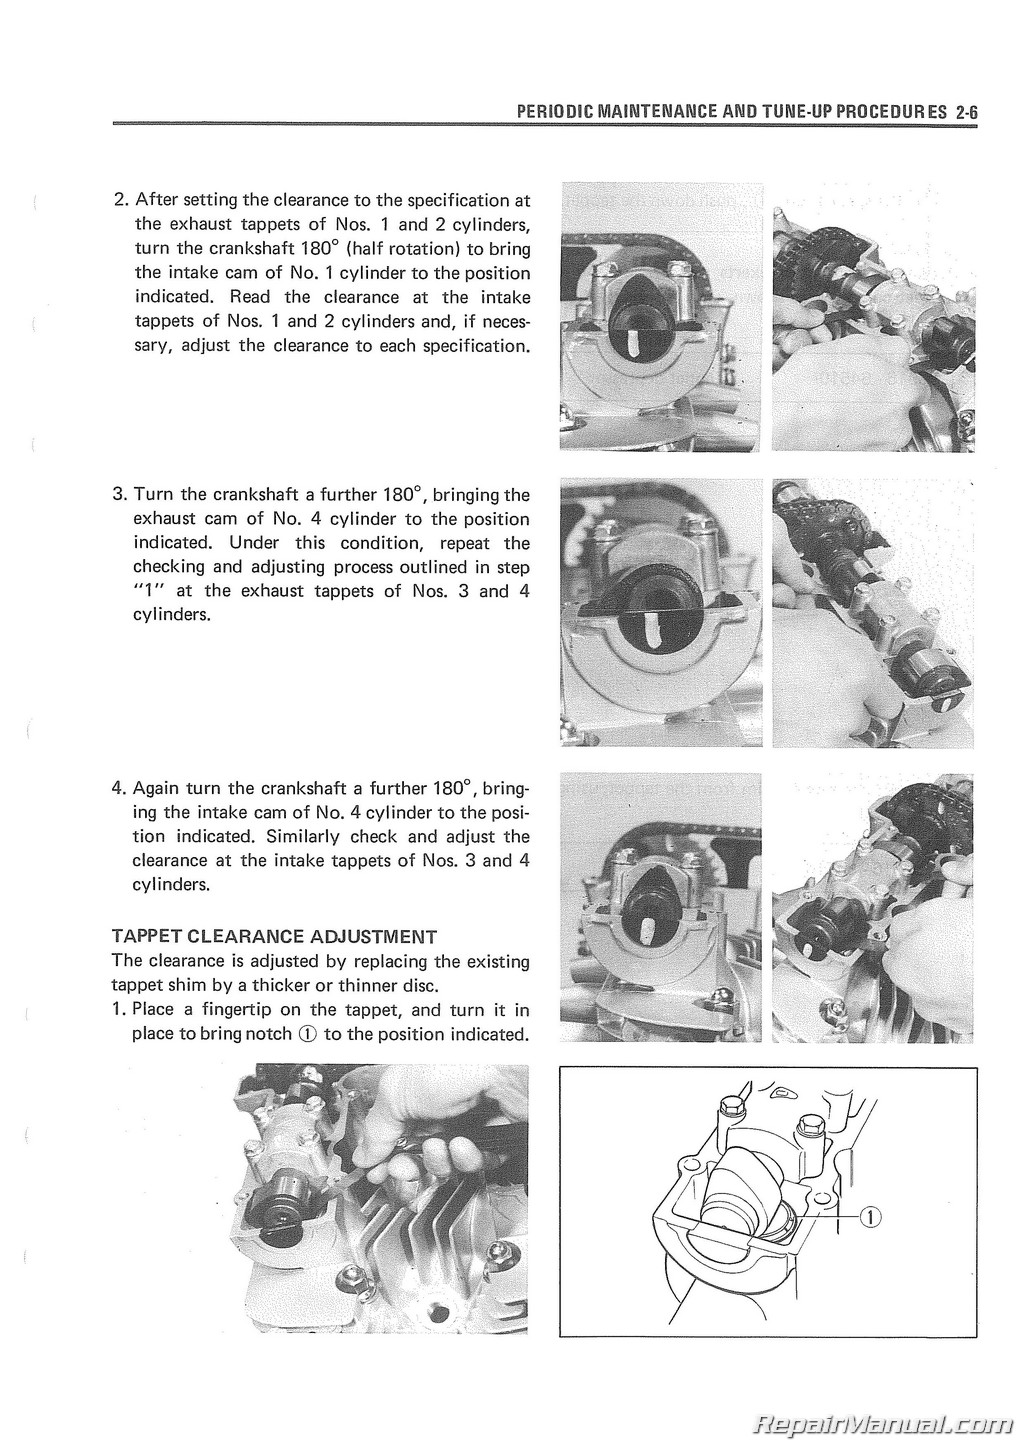 1983 1984 Suzuki Gs1100g Motorcycle Service Manual Ebay Gs700 Wiring Diagram Page 1